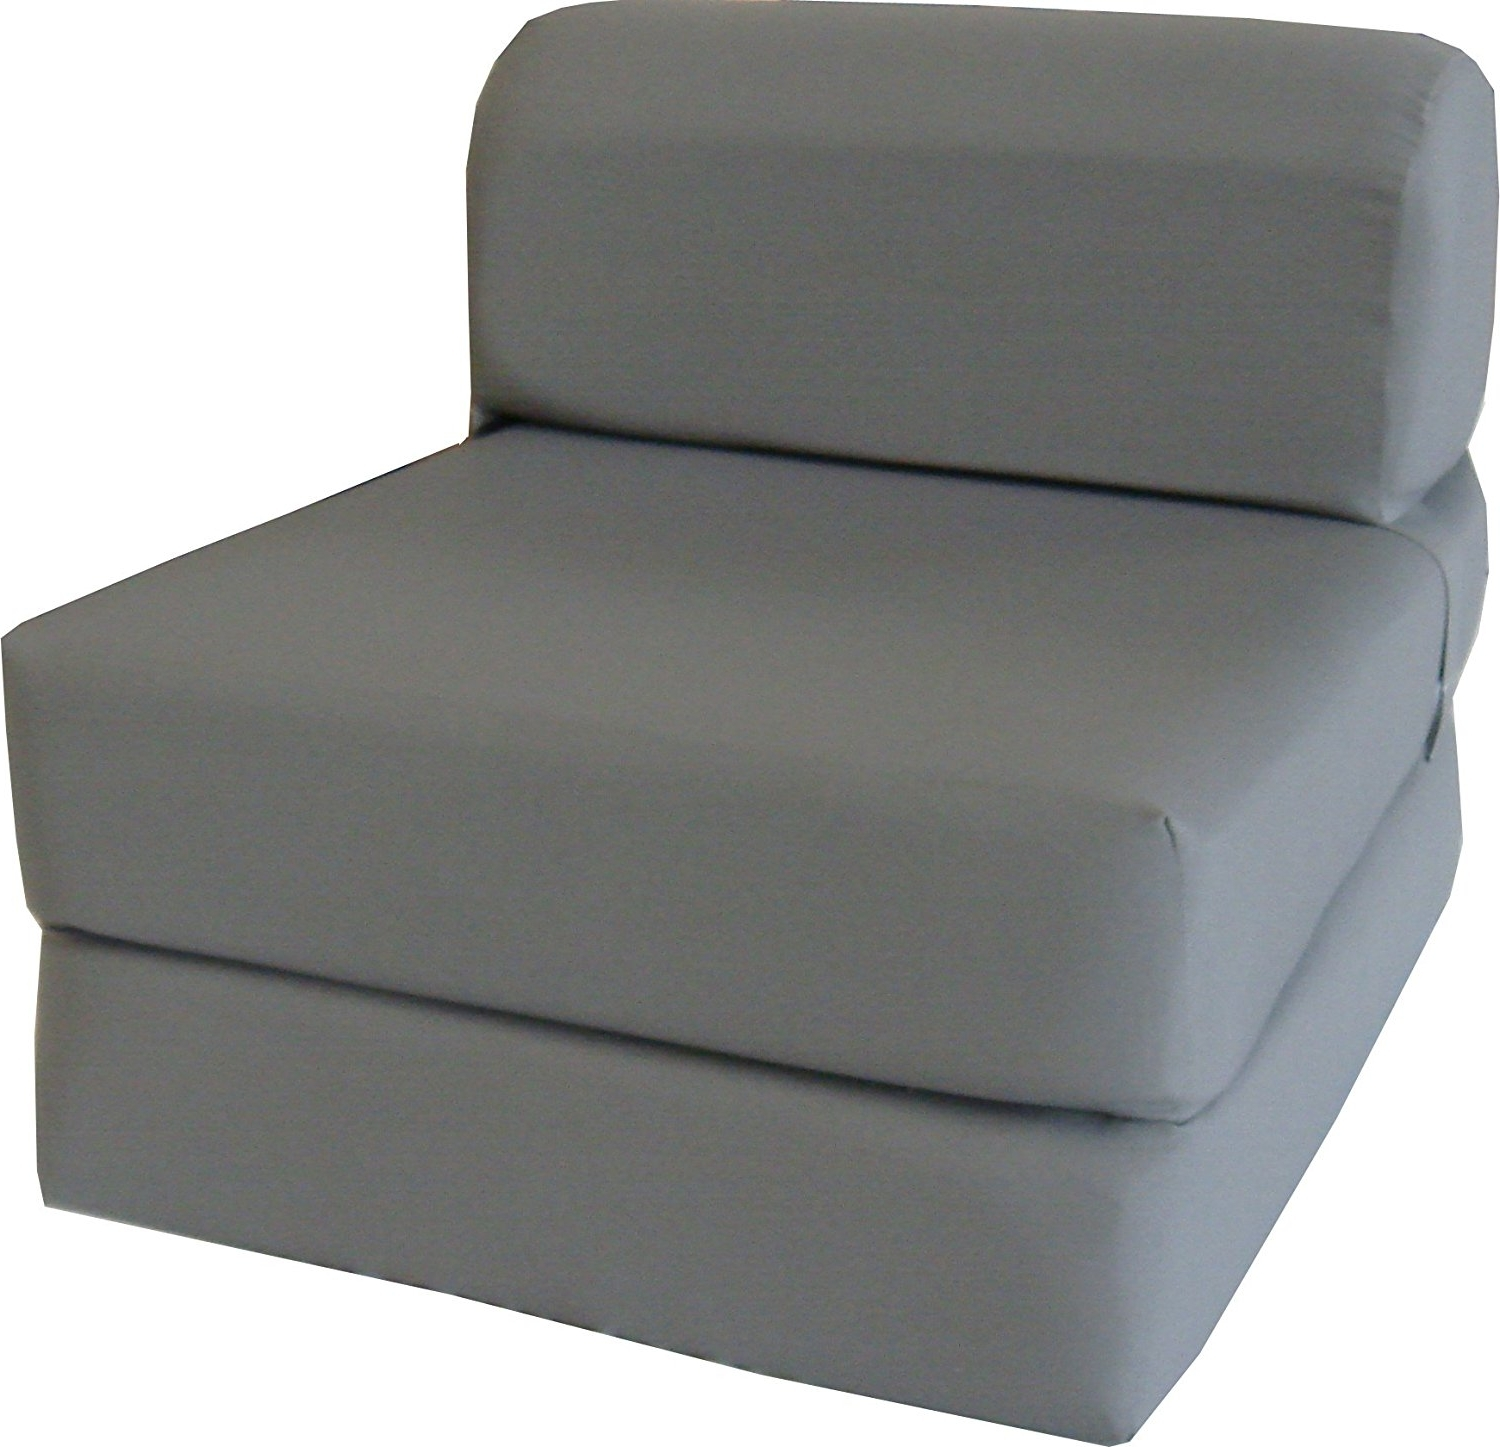 "Trendy Folding Sofa Chairs Pertaining To Amazon: Gray Sleeper Chair Folding Foam Bed Sized 6"" Thick X (View 14 of 15)"